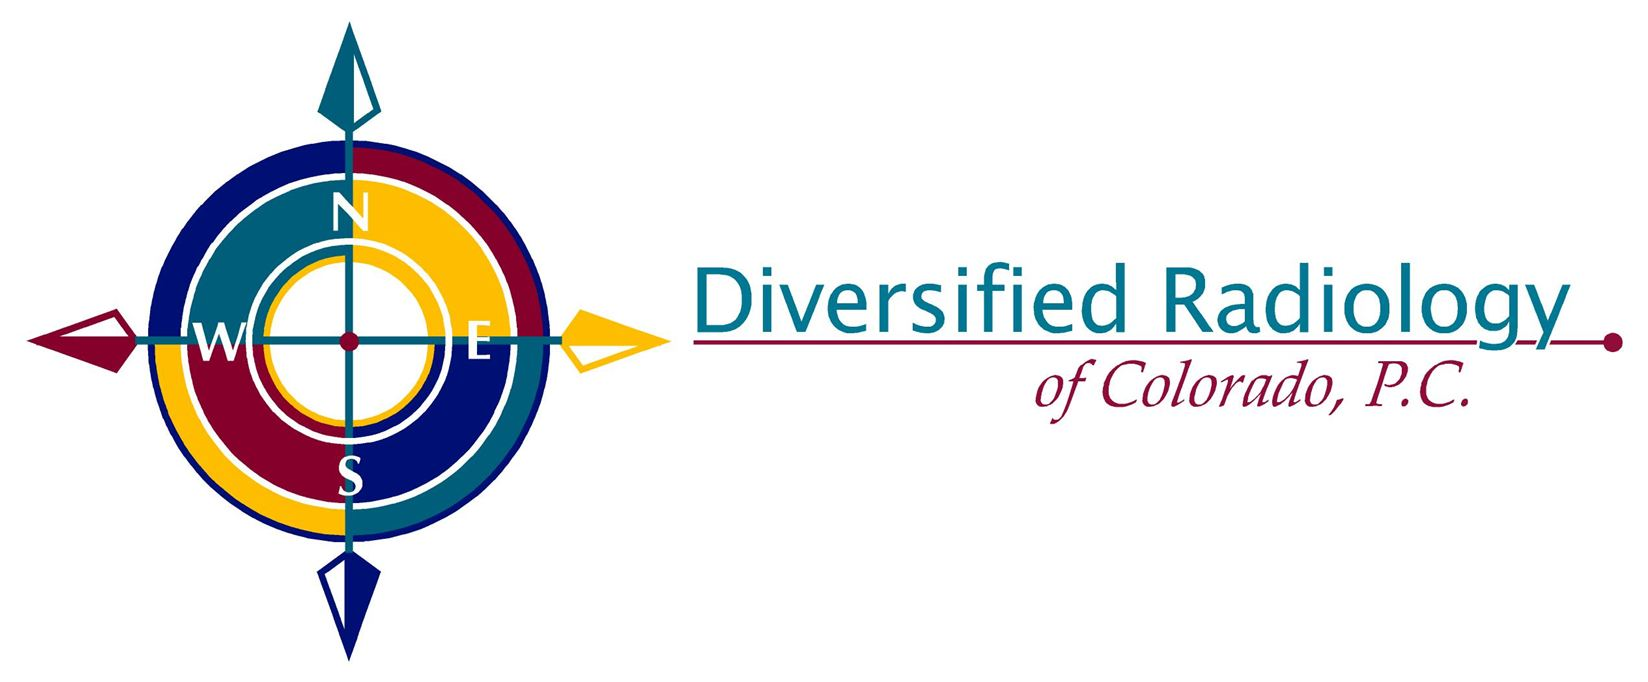 Diversified Radiology of Colorado, P.C.